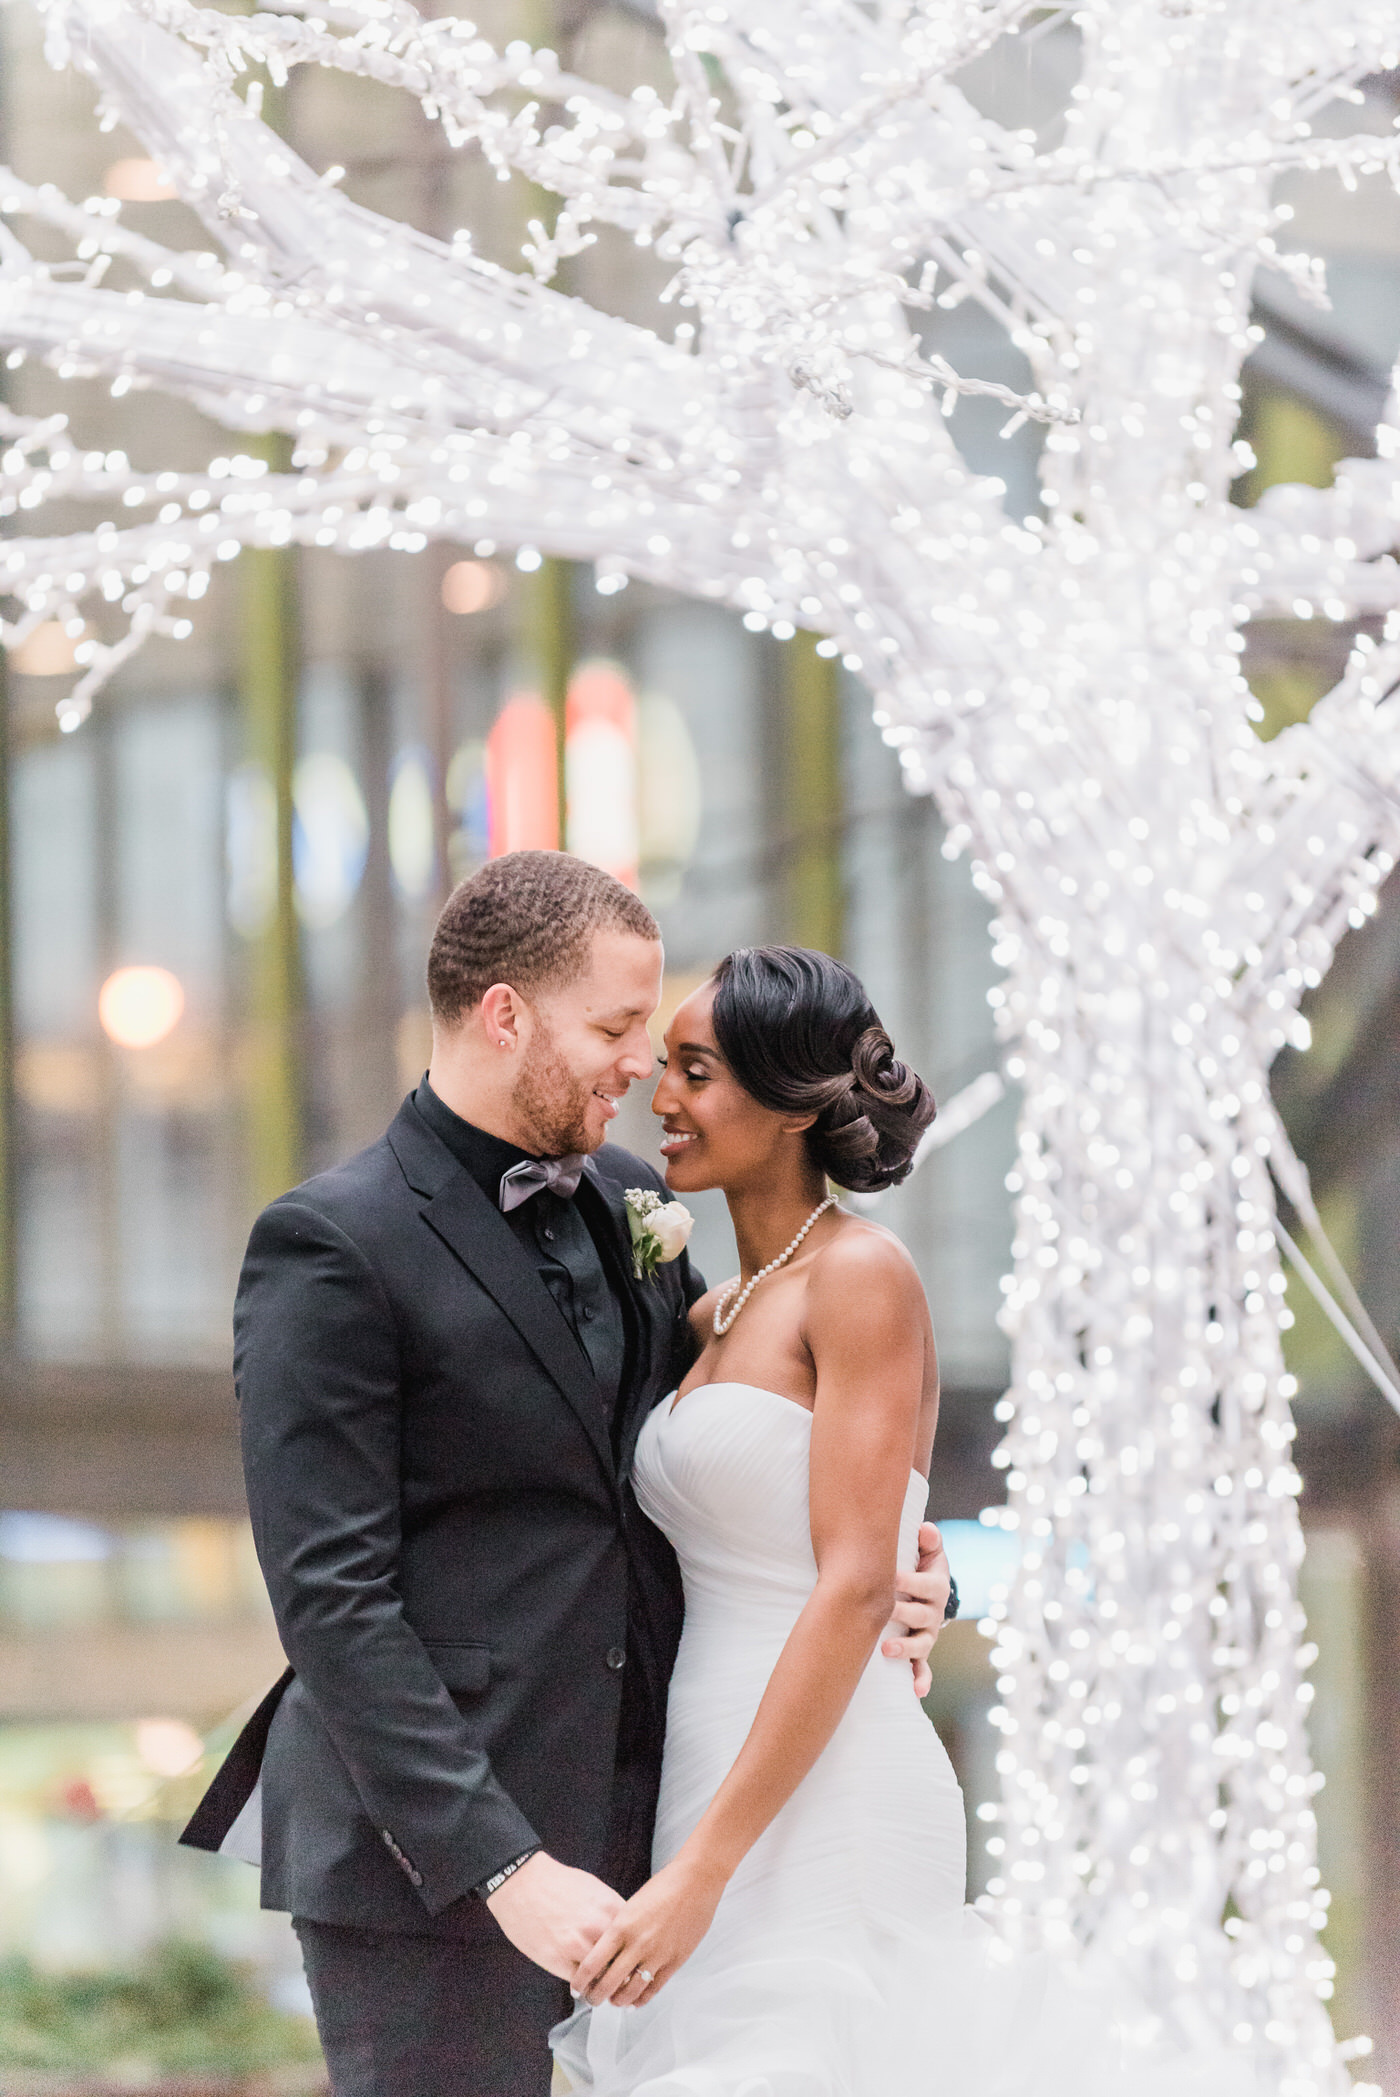 Light and airy portrait of couple in downtown Toronto for New Year's eve wedding